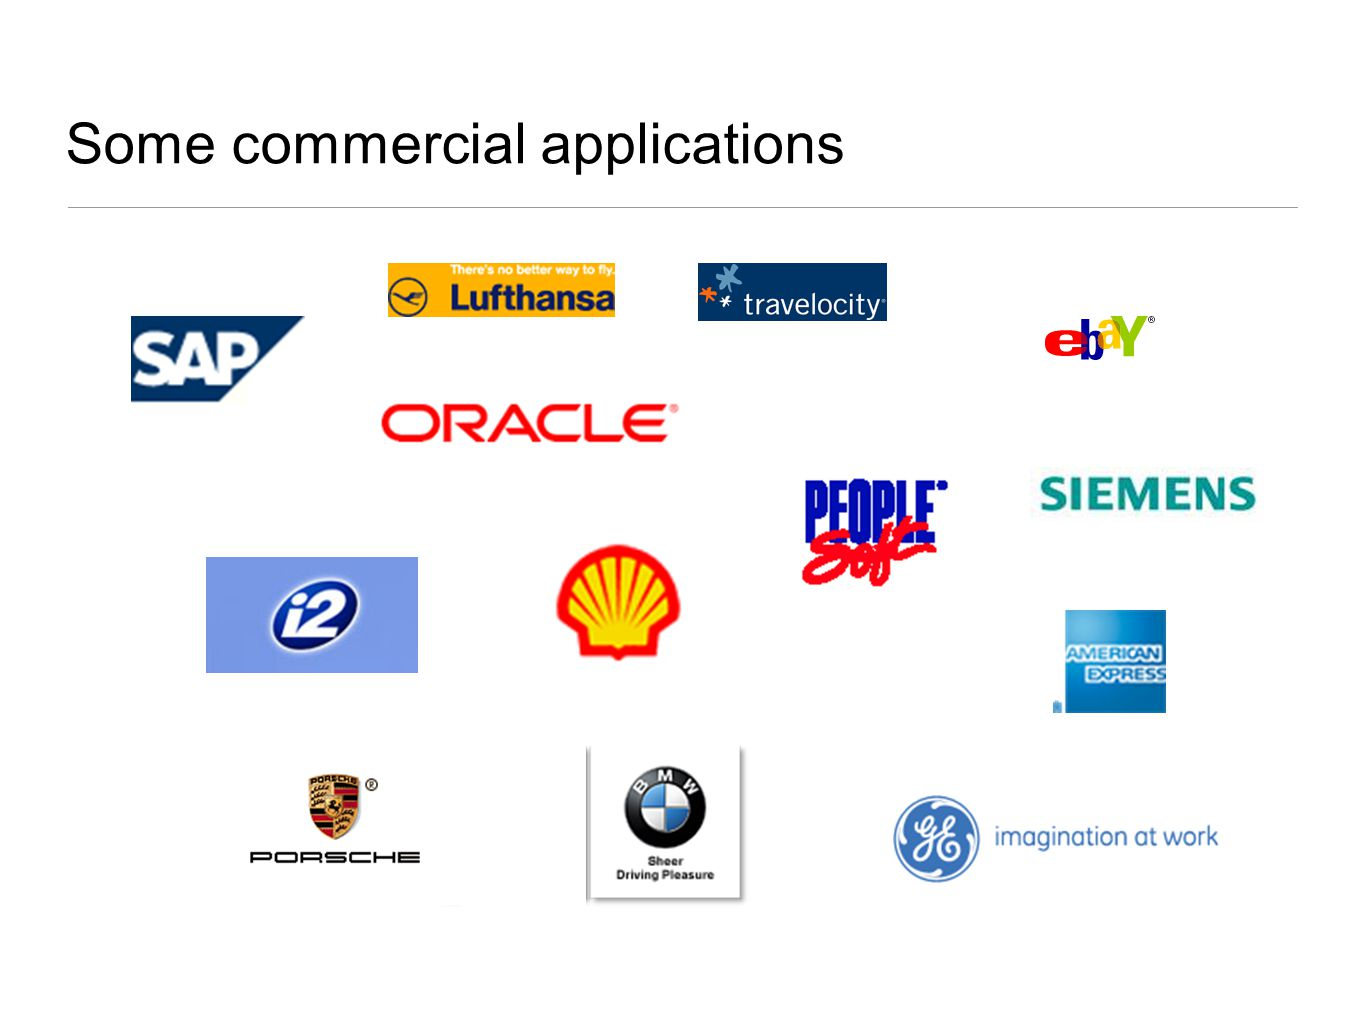 Some commercial applications